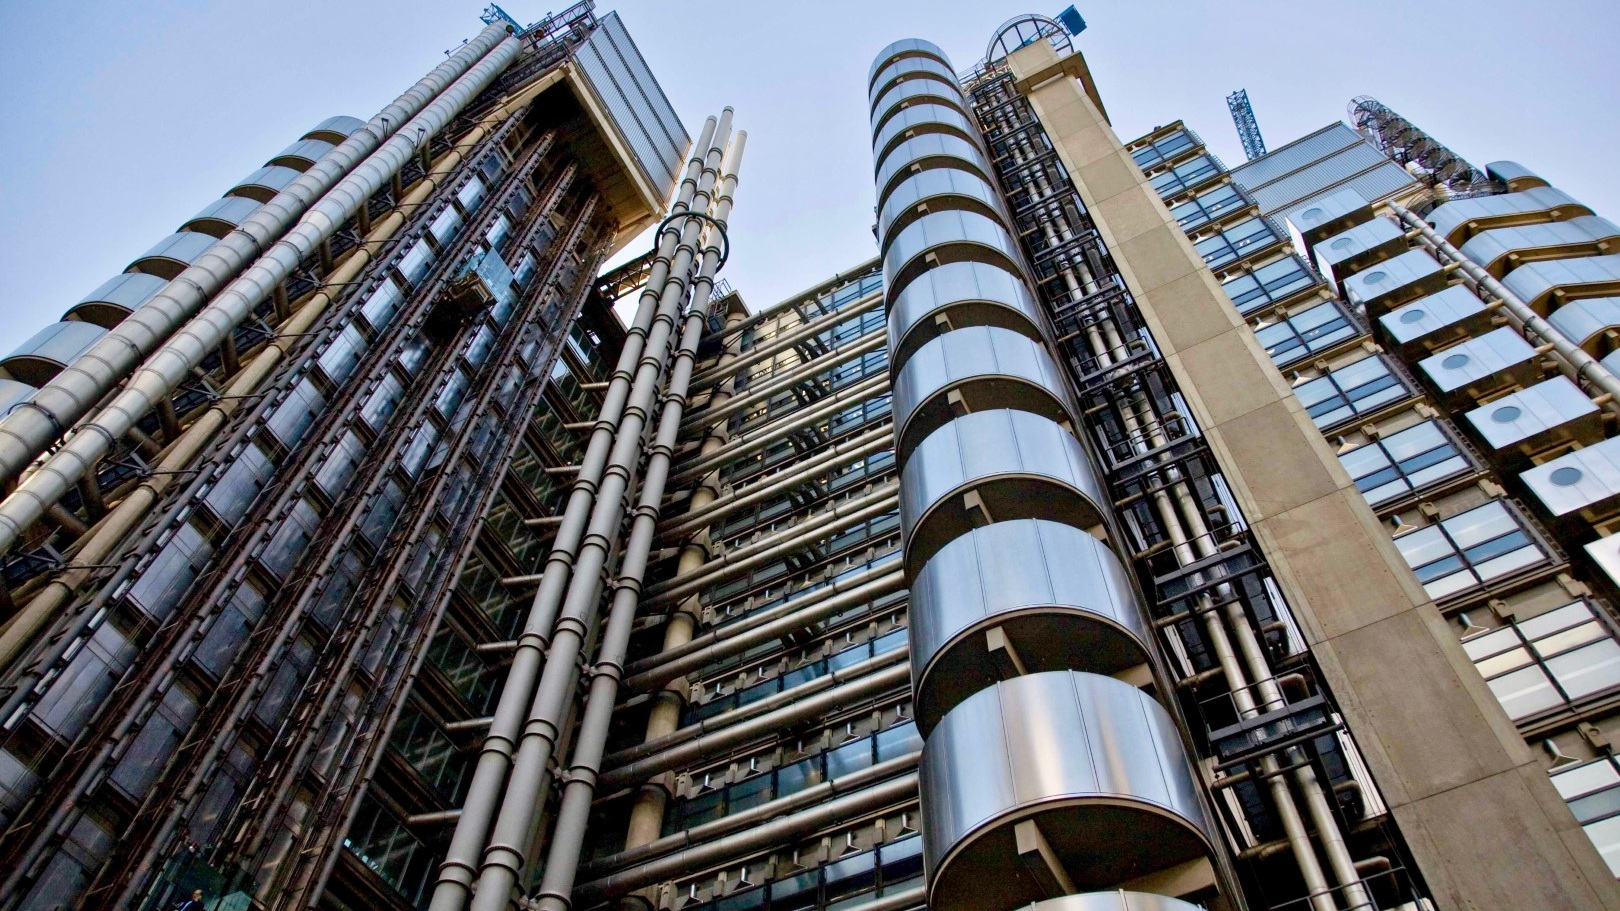 Lloyds+Building+%2812%29+%28Large%29.jpg